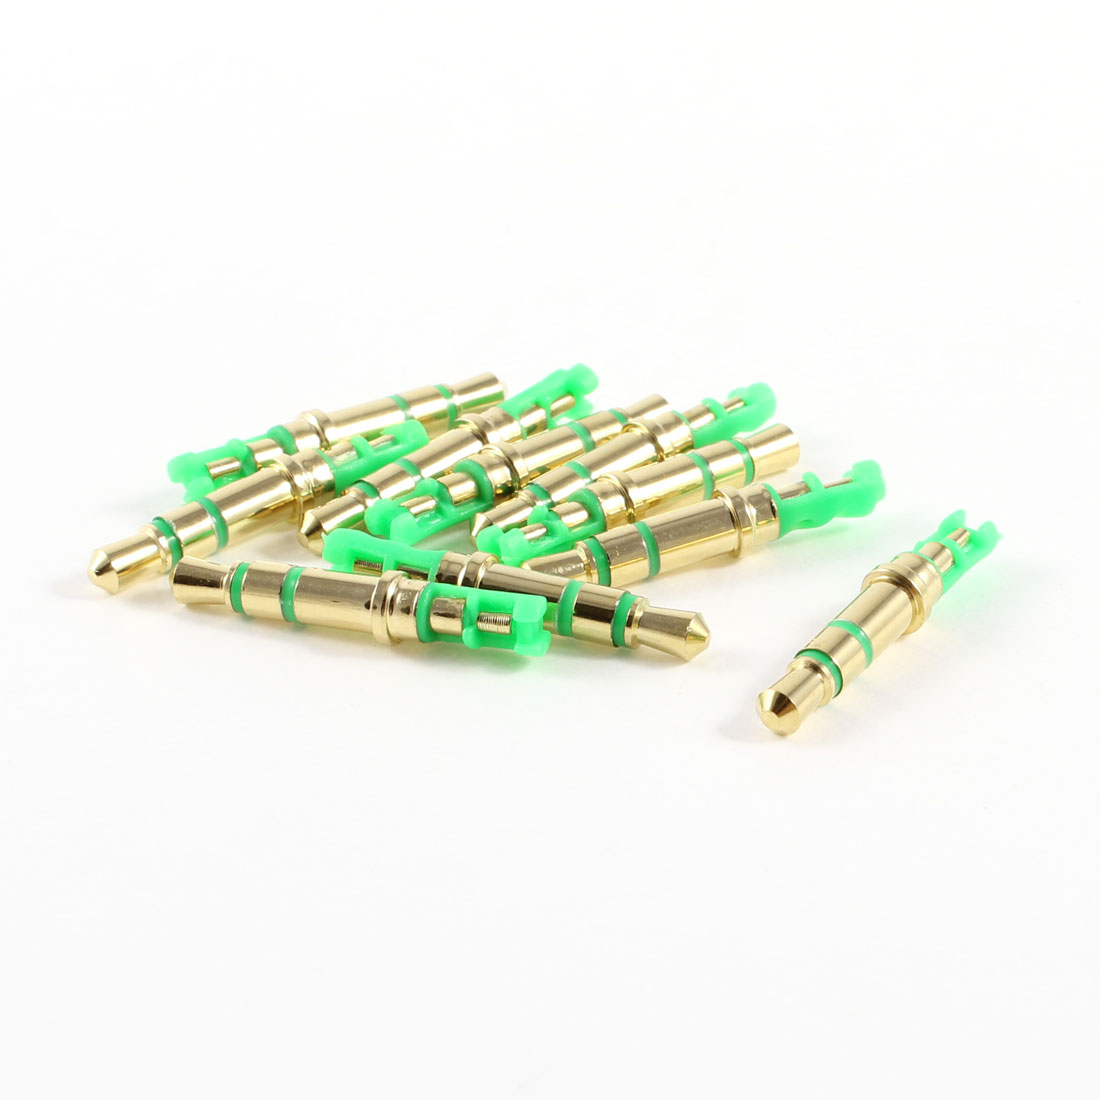 10 Pcs Green 3.5mm Male Plug 3 Pole Stereo Earphone Headphone Audio Jack